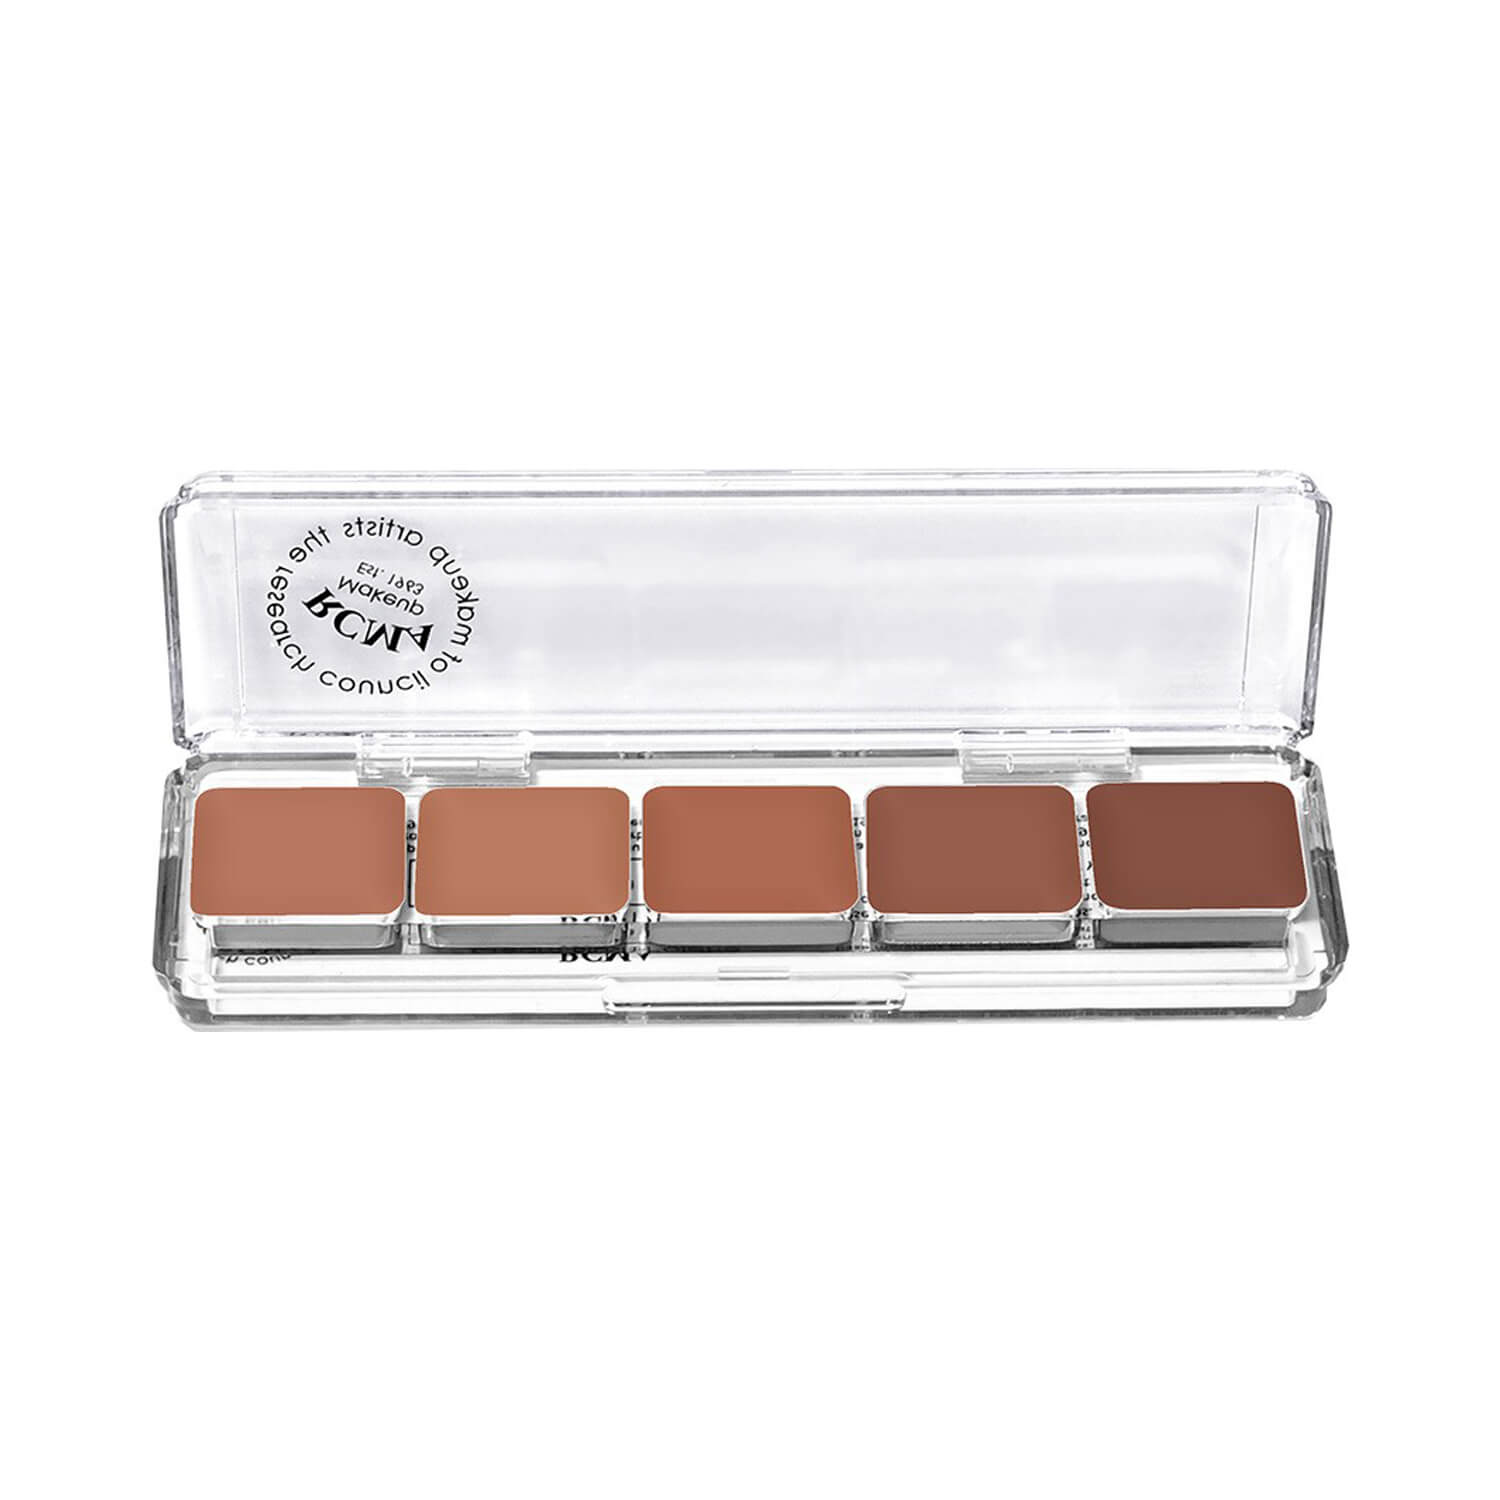 RCMA KT Series 5 Part Palette